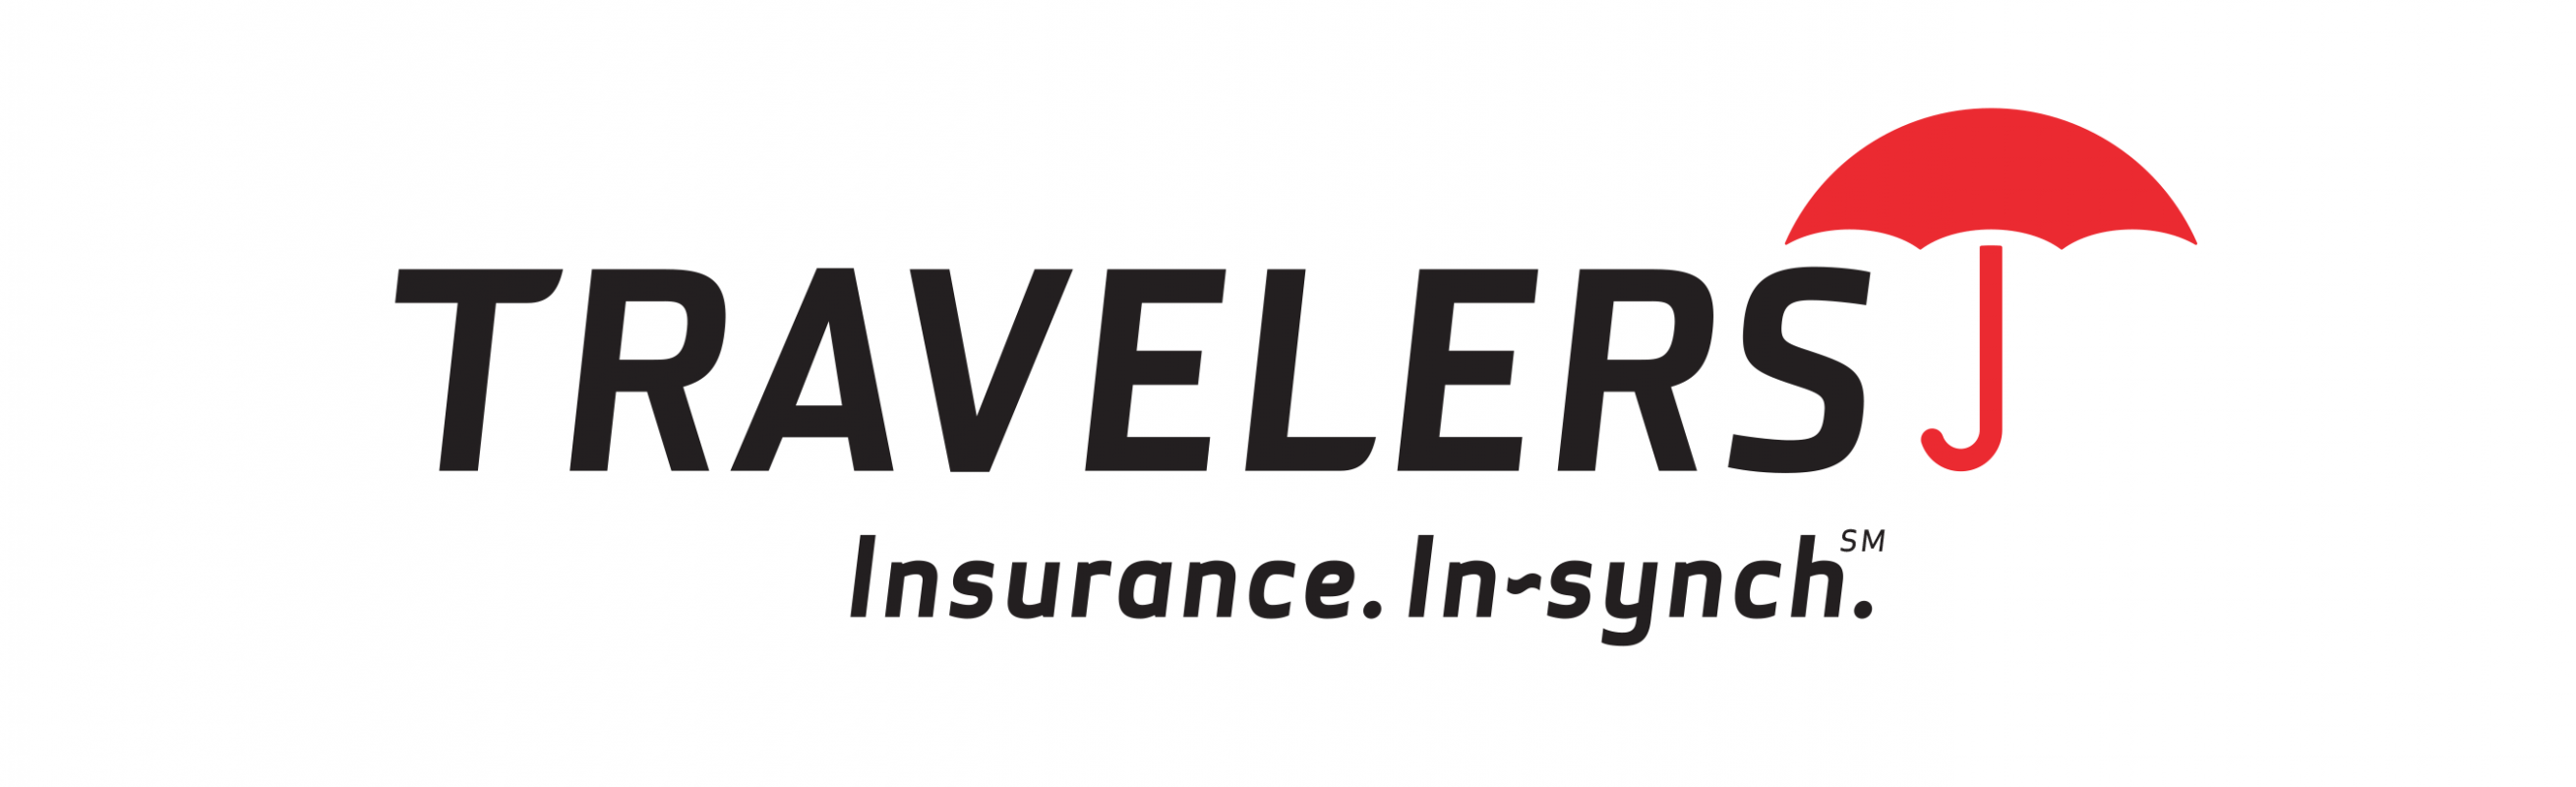 All You Need To Know About Travelers Insurance Commercial